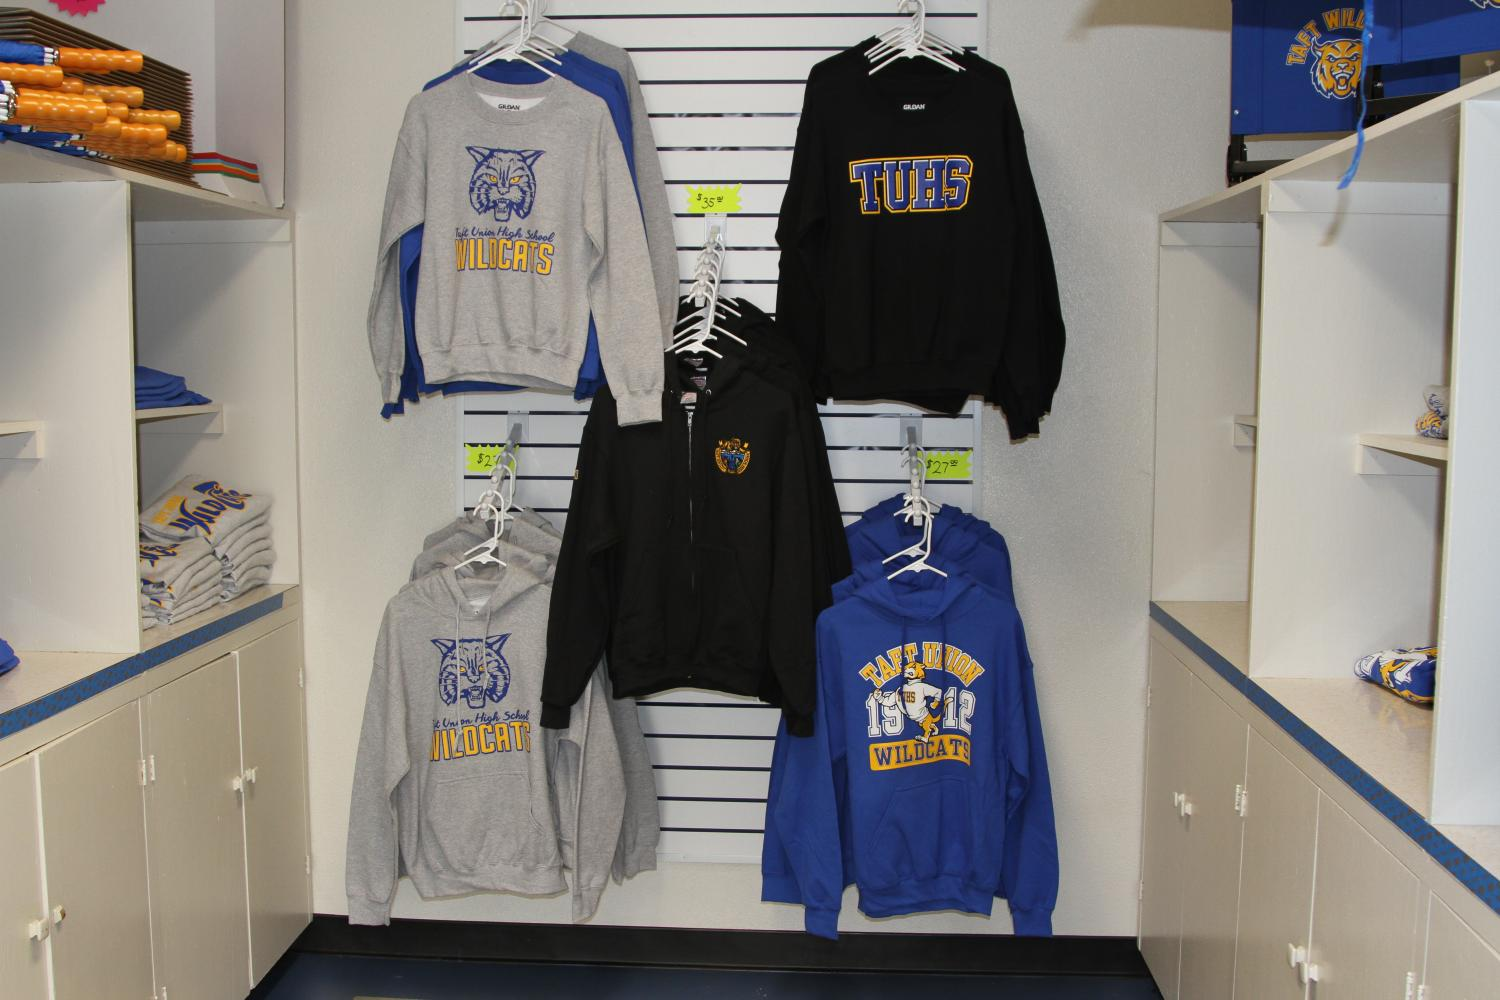 Some+of+the+items+available+at+the+Student+Store+include+sweatshirs%2C+t-shirts%2C+hats%2C+and+many+others.